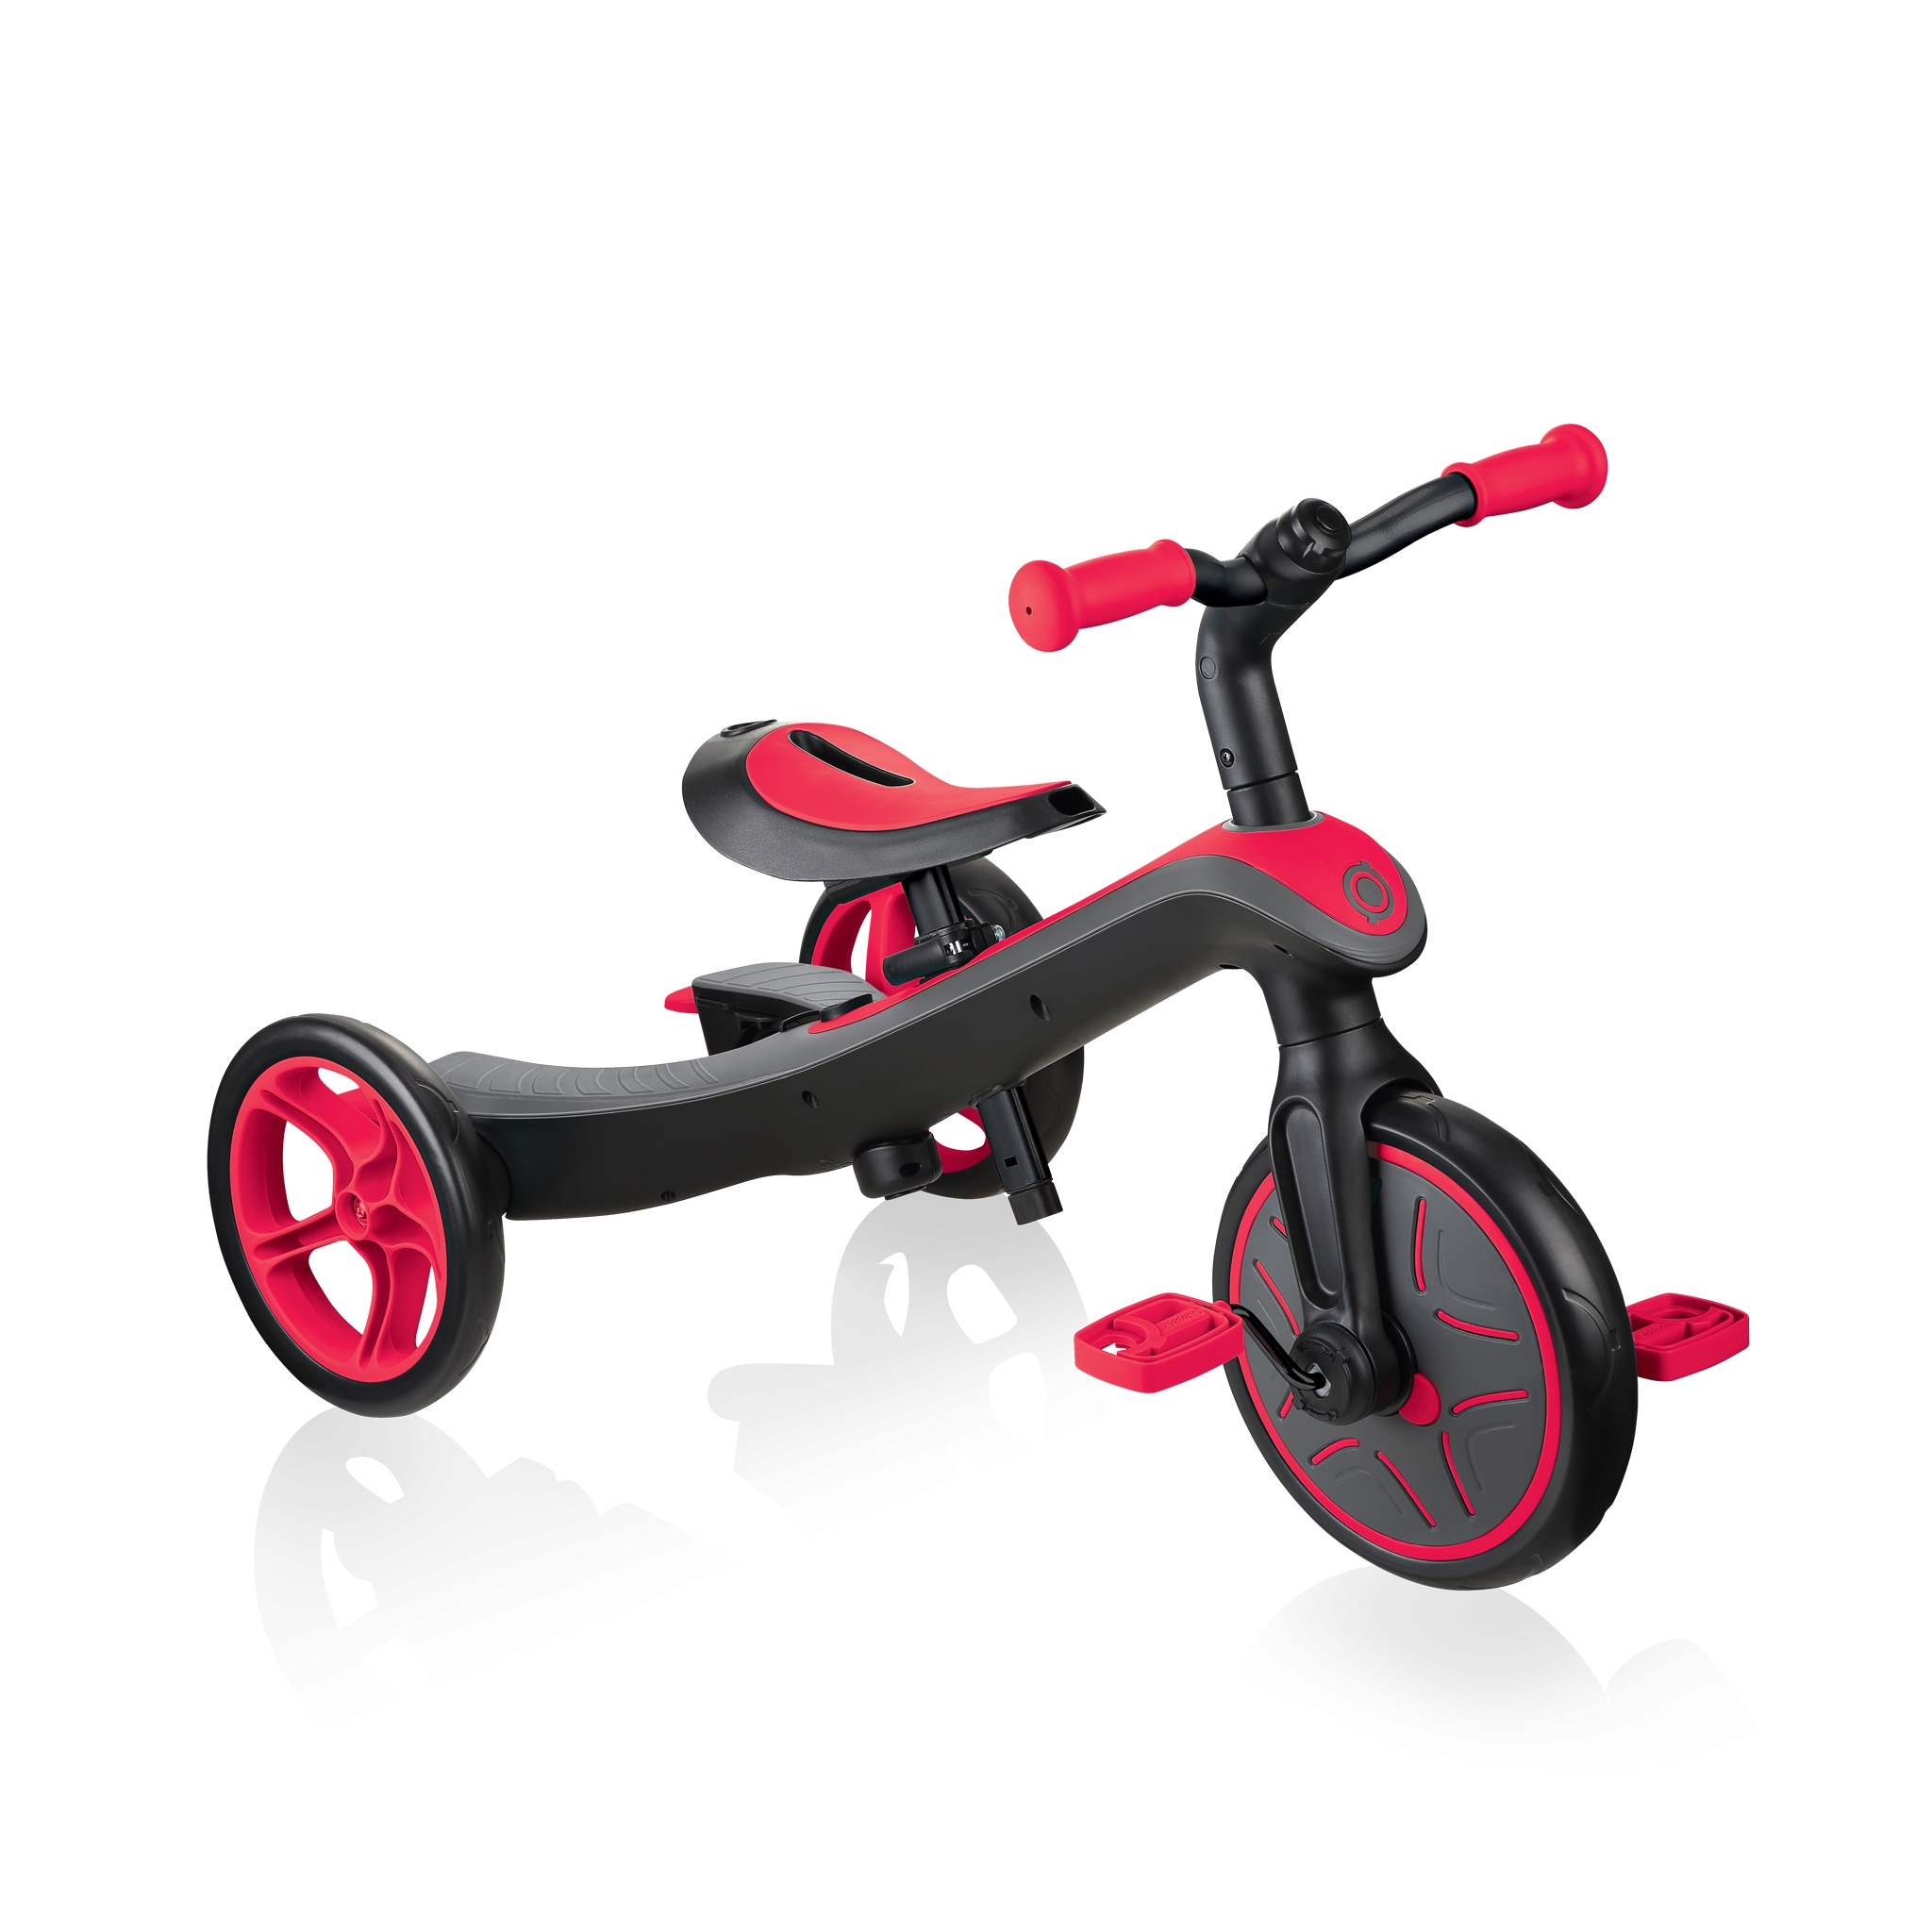 Globber-EXPLORER-TRIKE-4in1-all-in-one-baby-tricycle-and-kids-balance-bike-stage3-training-trike 2